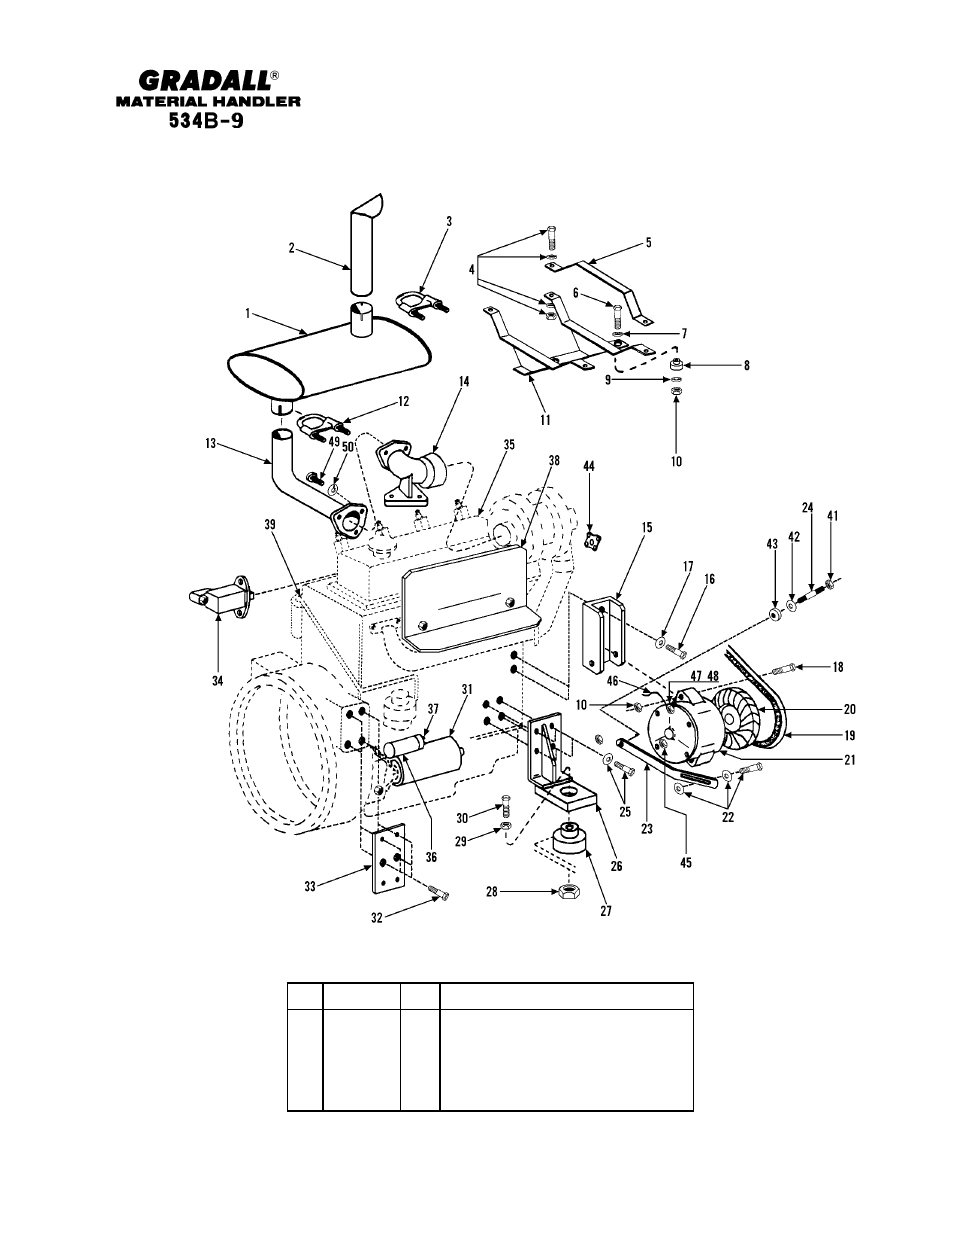 Section 5 engine & attaching parts | Gradall 534B-9 Parts Manual User Manual  | Page 50 / 192